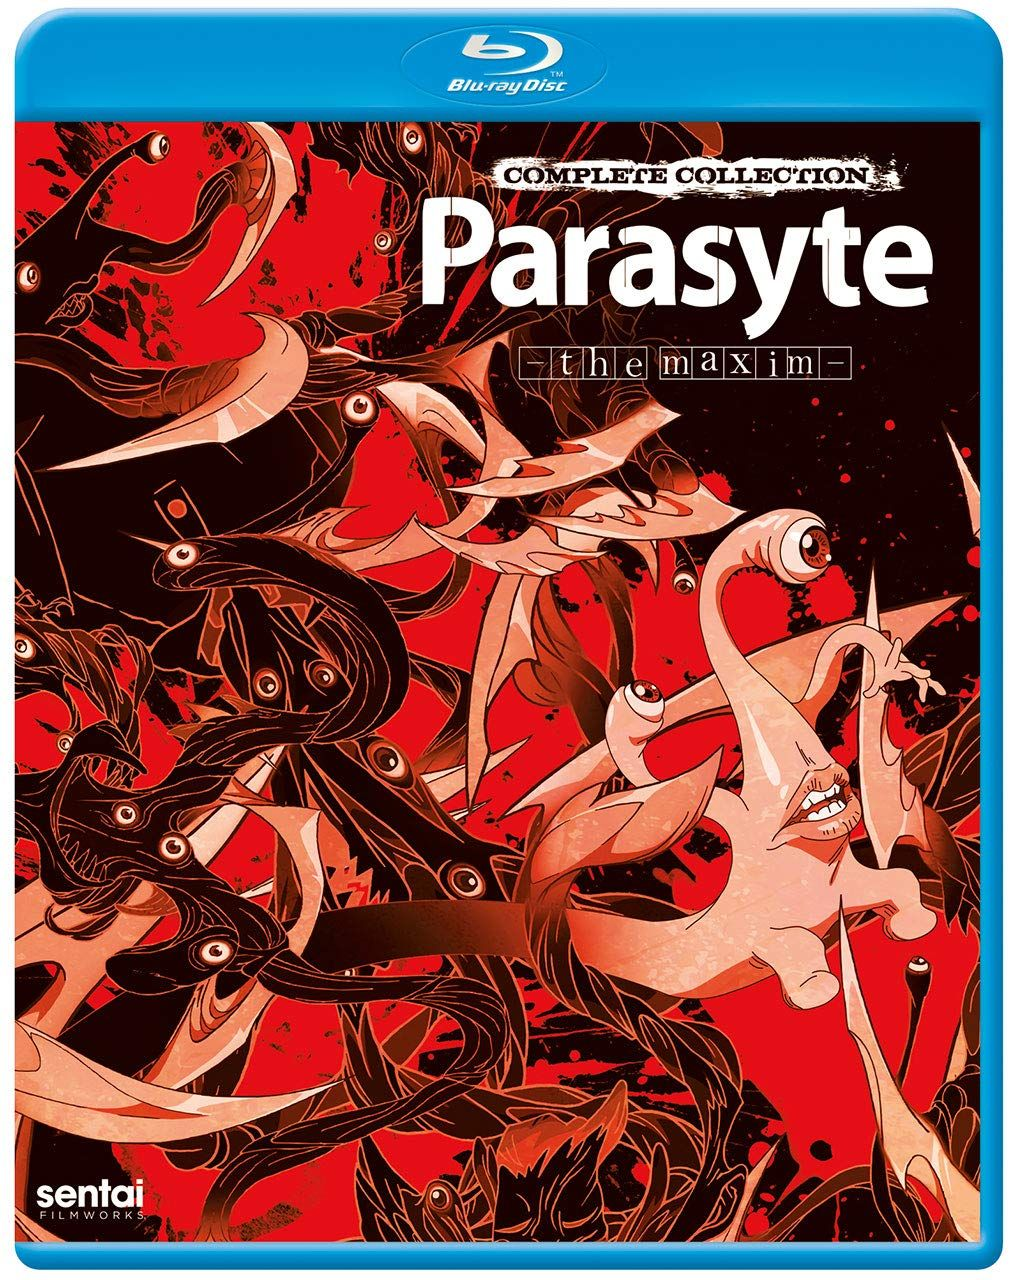 Parasyte The Maxim Complete Collection Blu Ray Ad Complete Aff Maxim Parasyte In 2020 Parasyte The Maxim Blu Ray Complete Collection